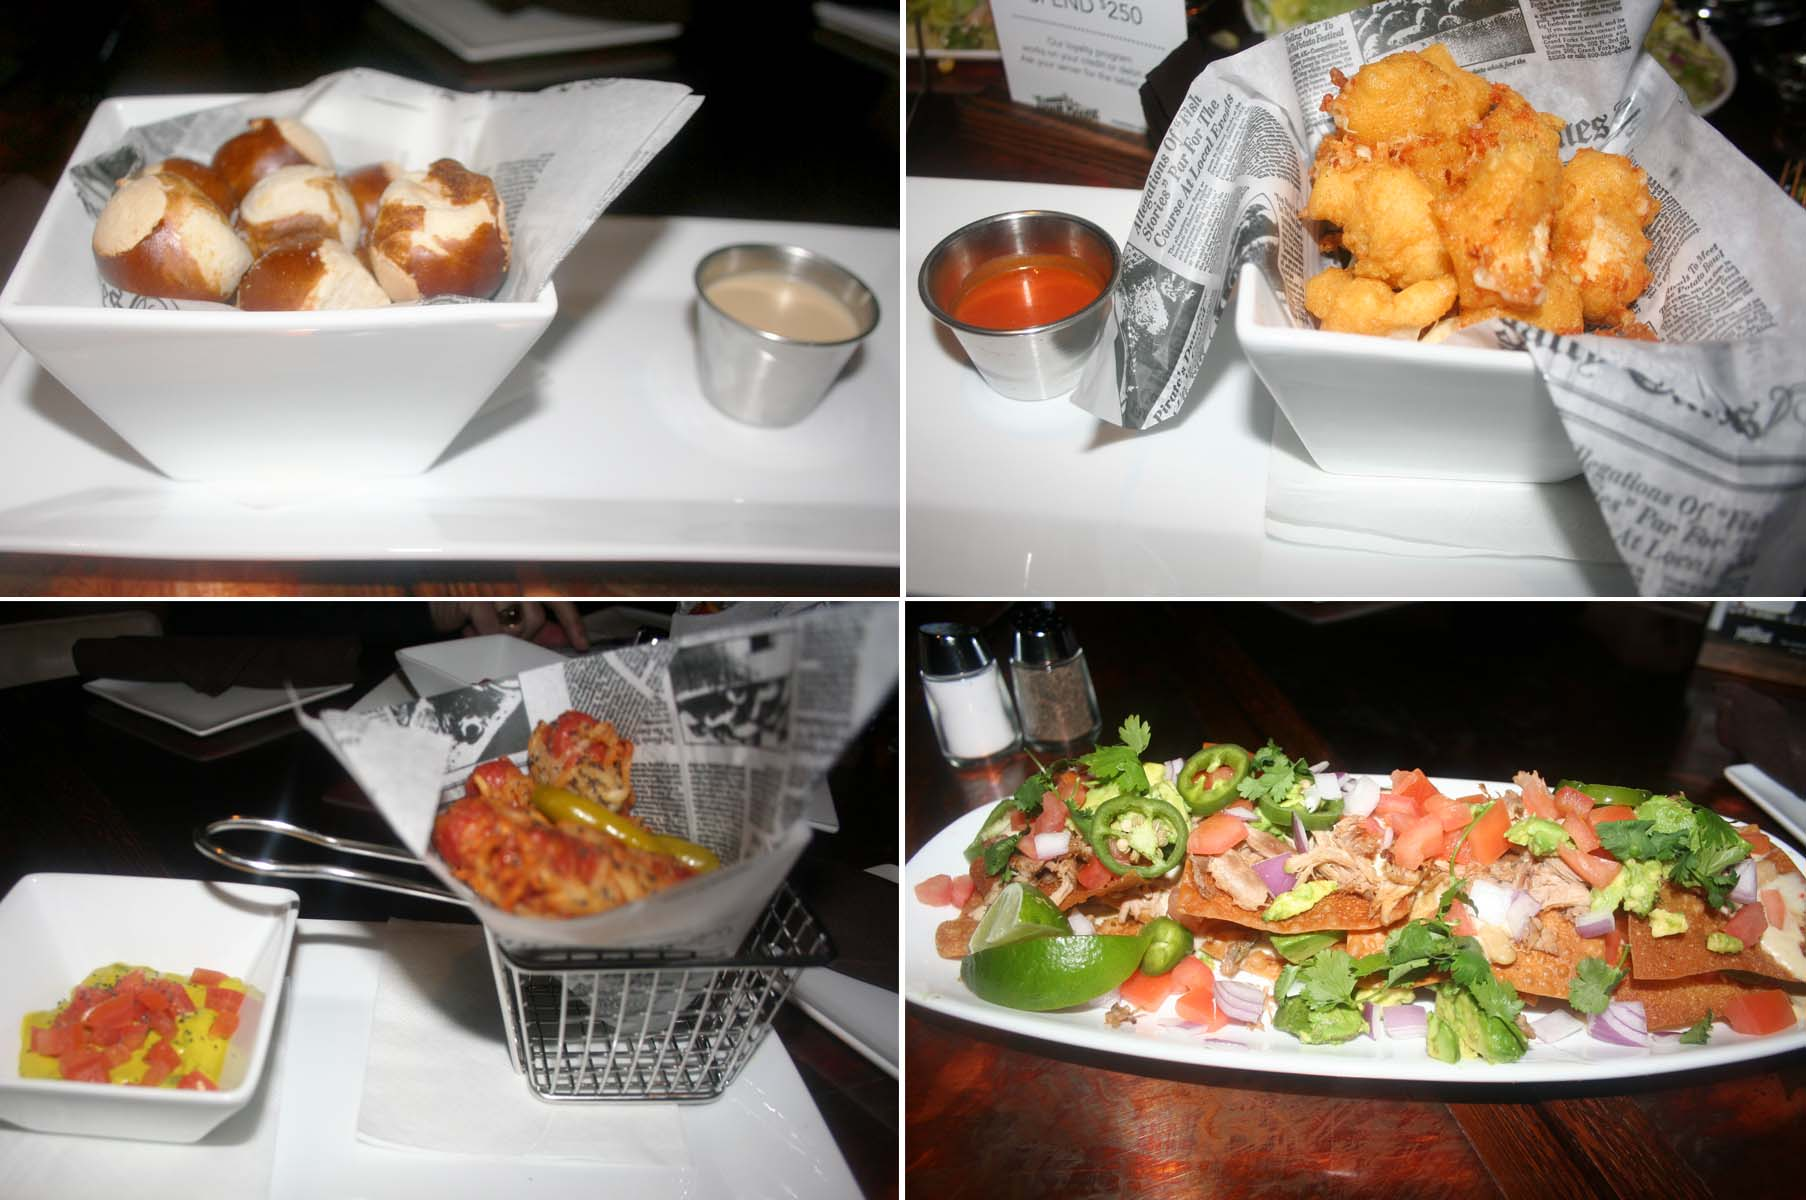 Starters at Old Town Pour House include pretzel bites with cheese (clockwise from top left), cheese curds, duck confit nachos and Chicago dogs. (Photos: Mark Heckathorn/DC on Heels)